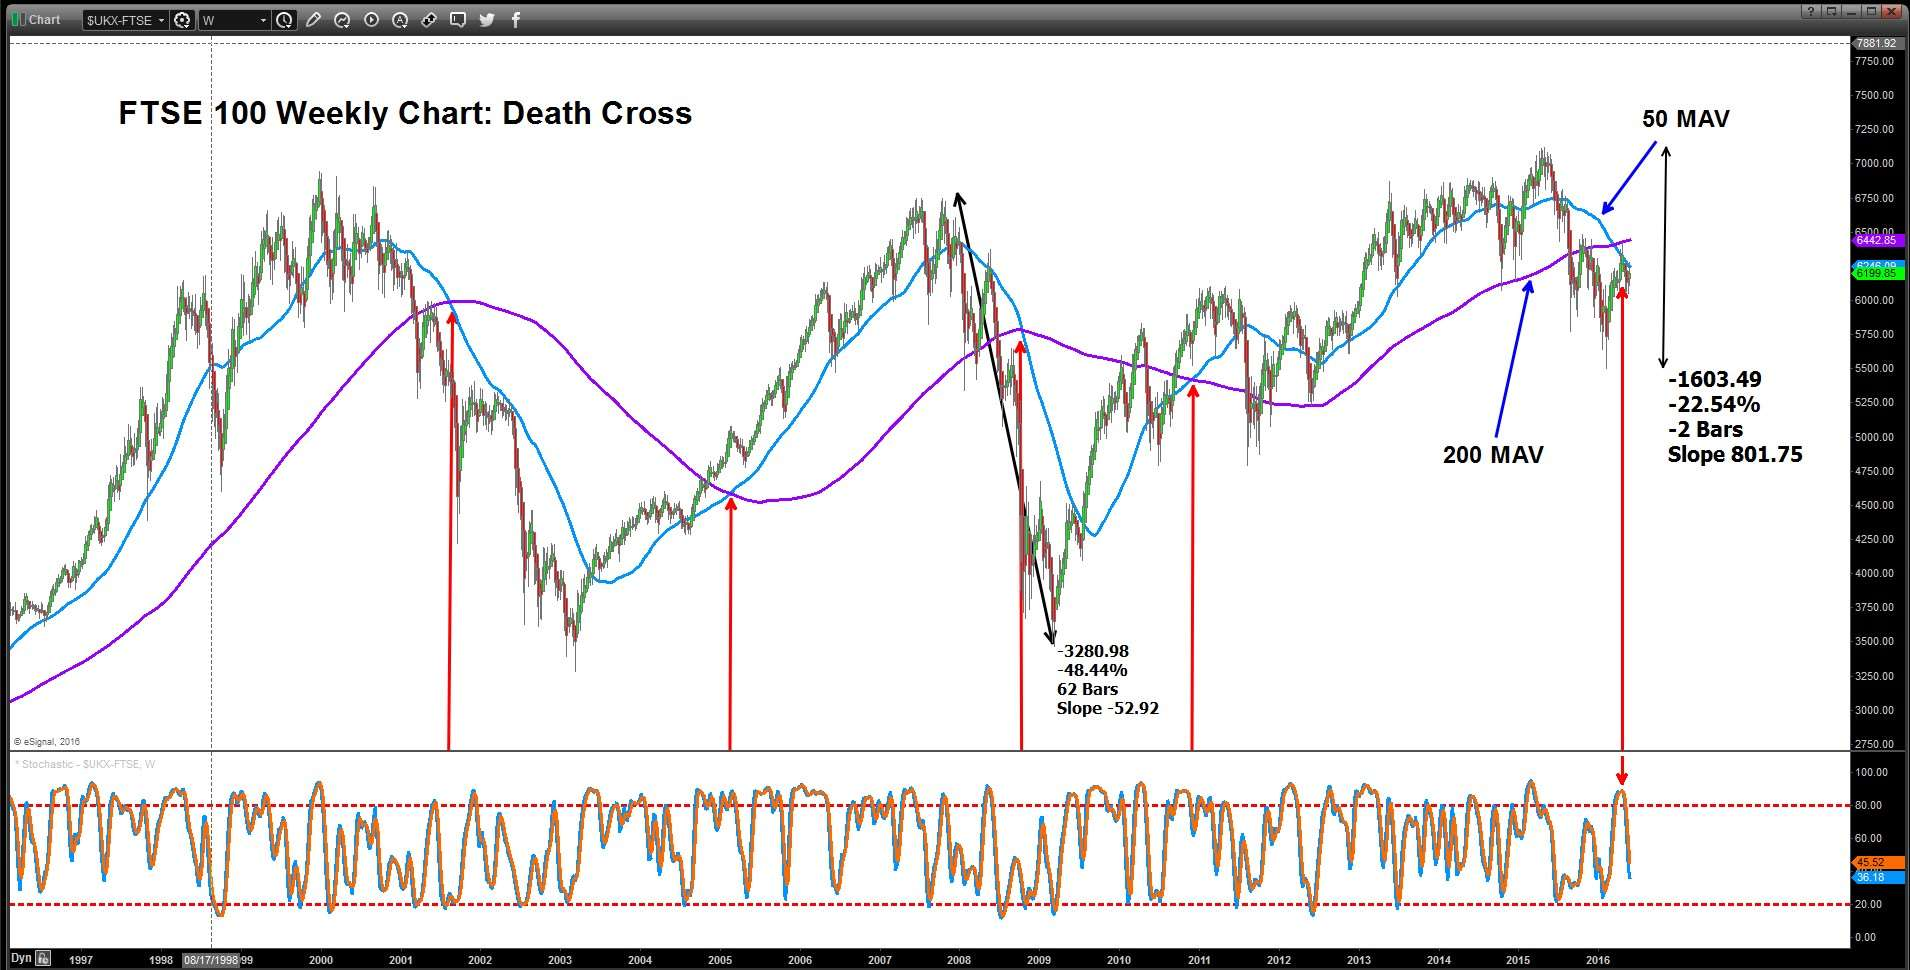 The FTSE 100 is in a 'death cross' situation